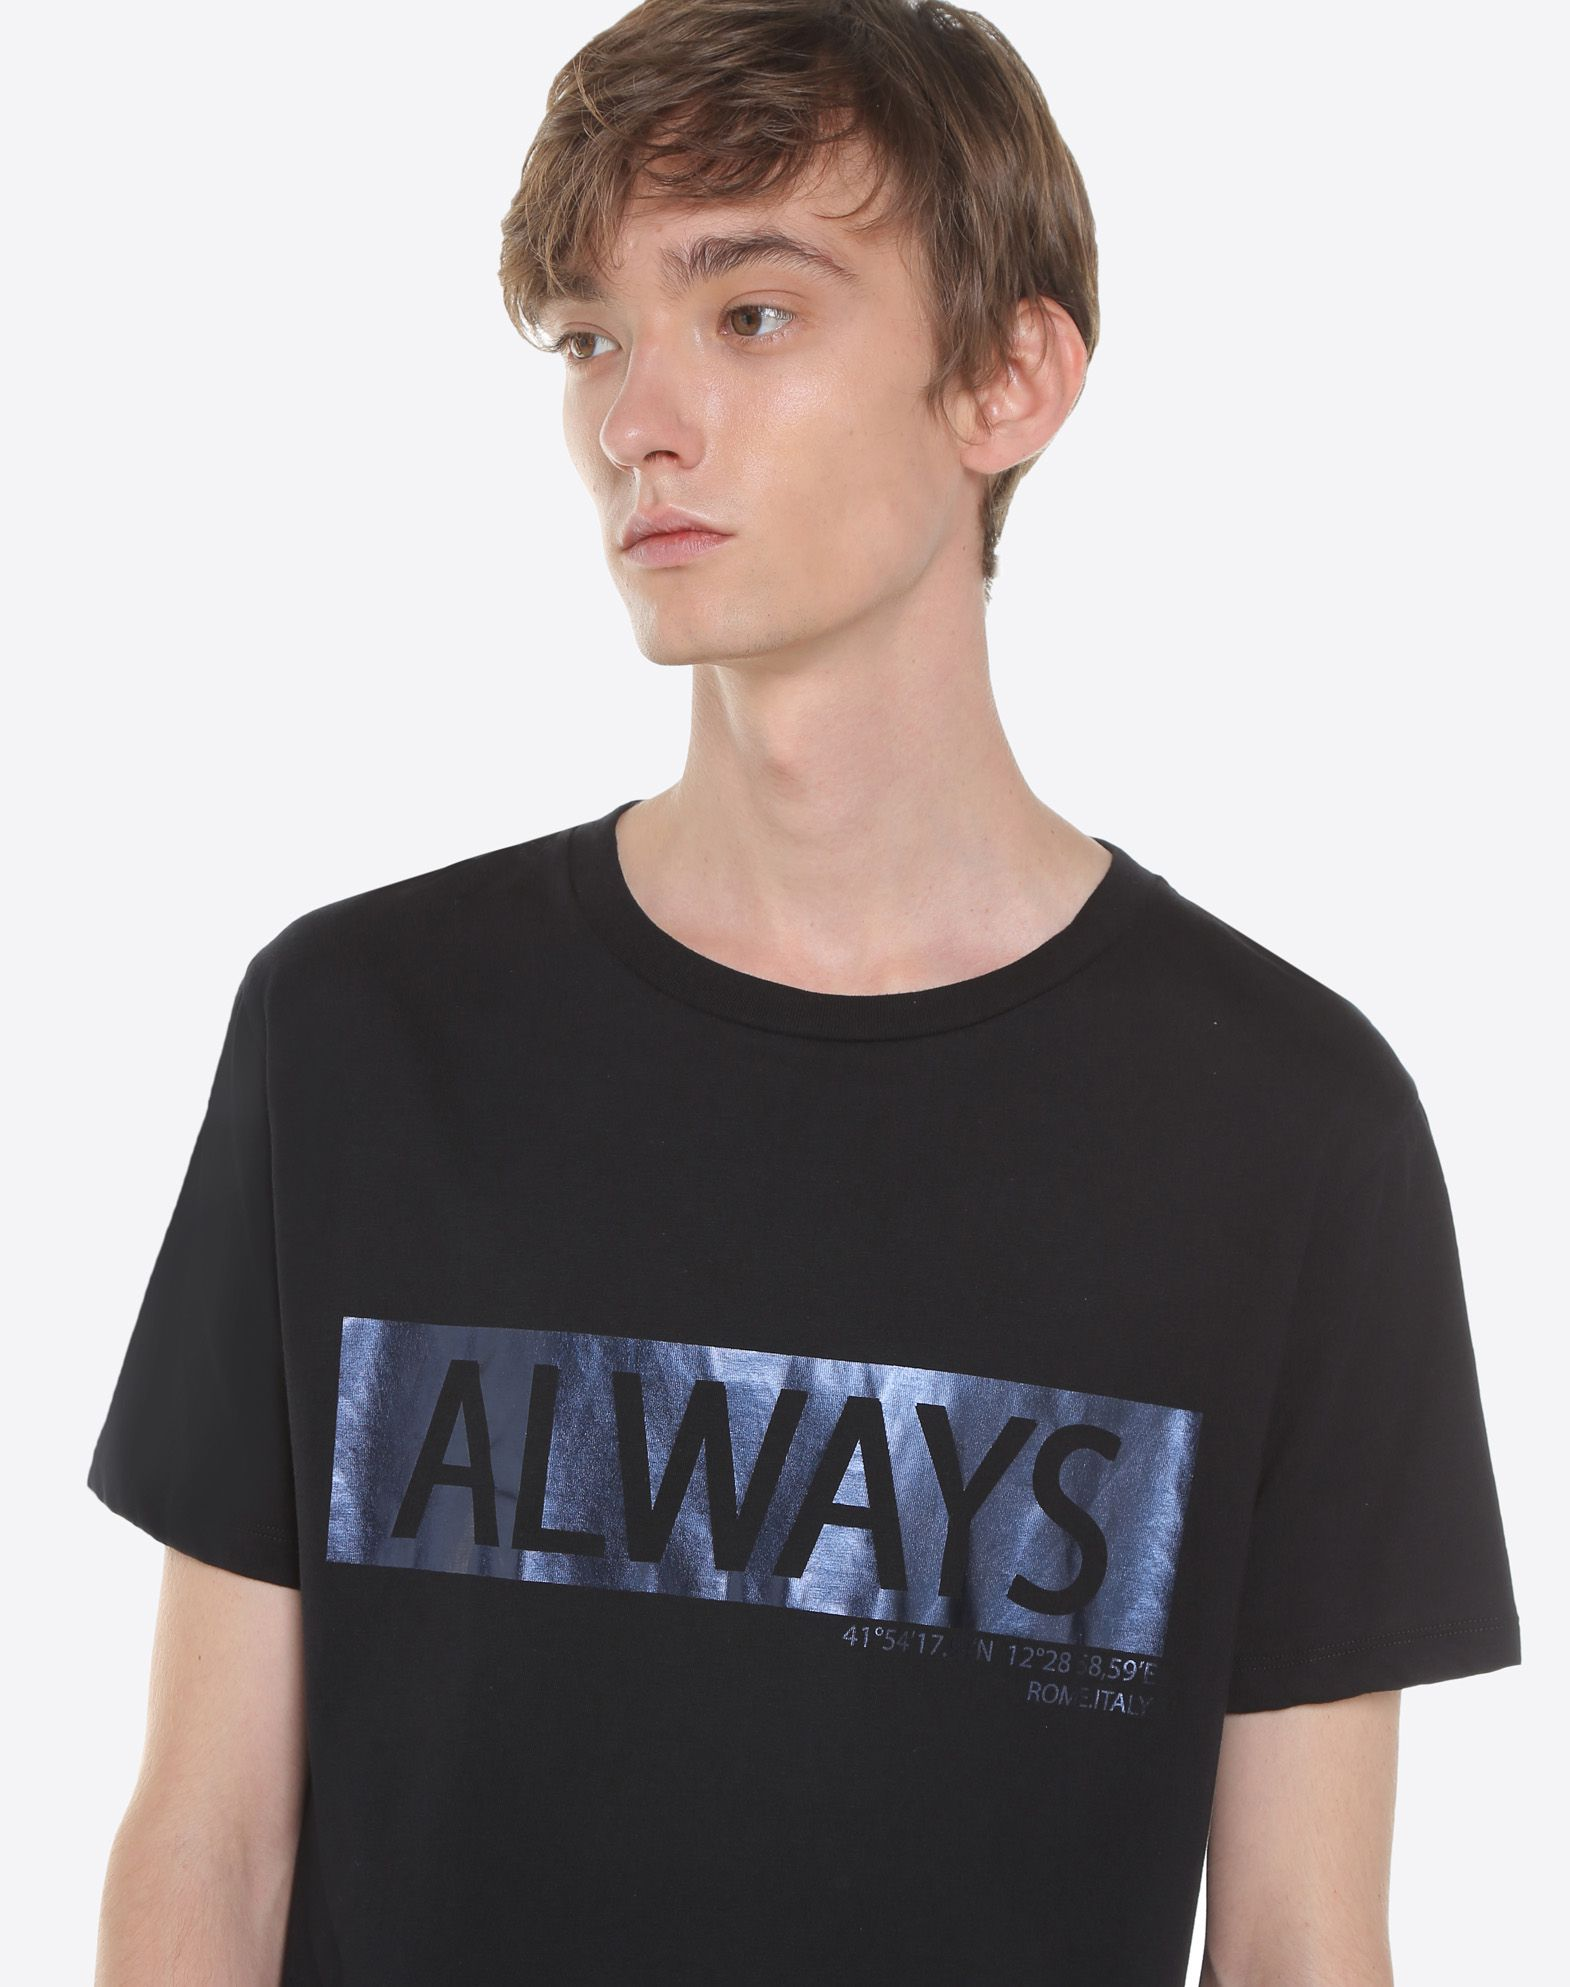 Valentino T Shirt With Always Lettering, t Shirts for Men ...